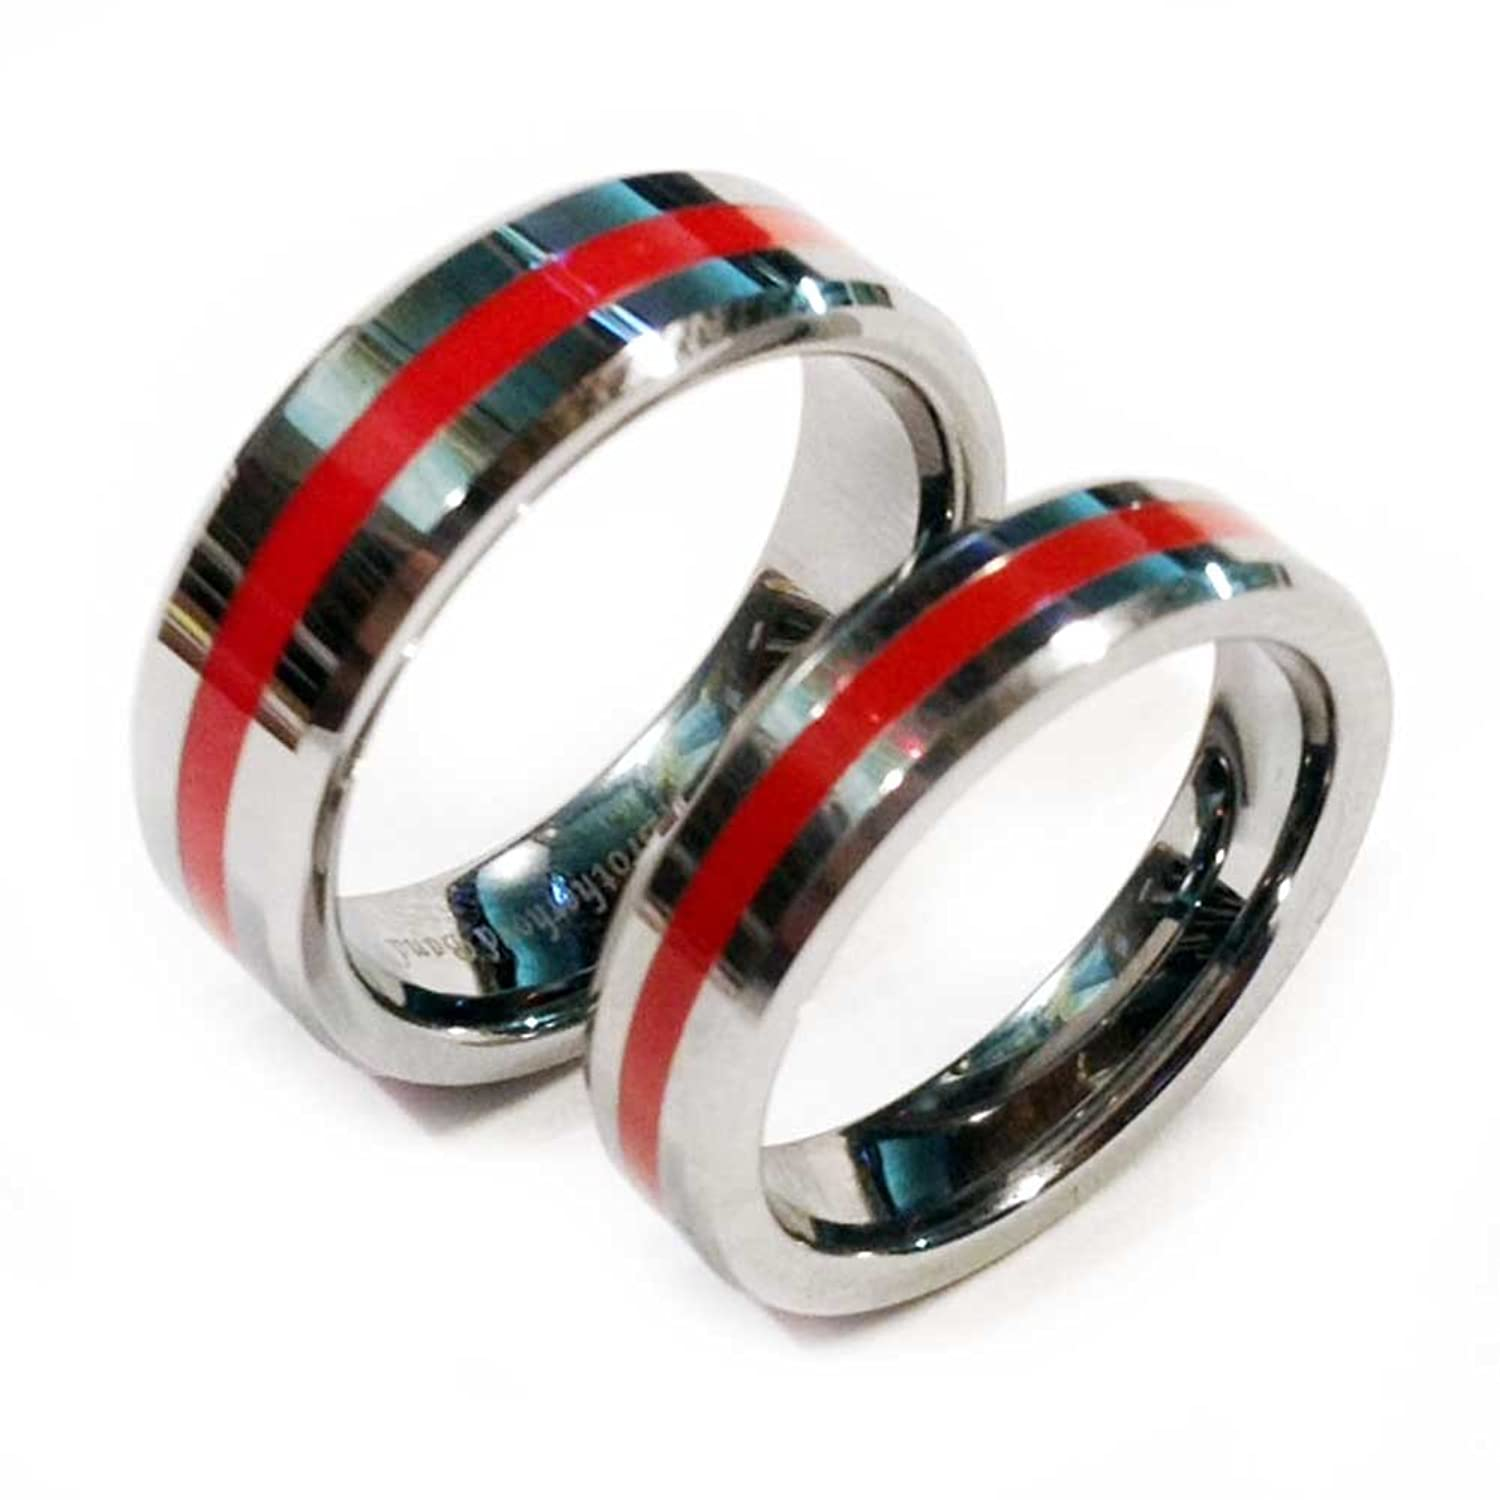 red black round image rings men junxin gold product wedding fashion big female size ring for jewelry vintage male and women products